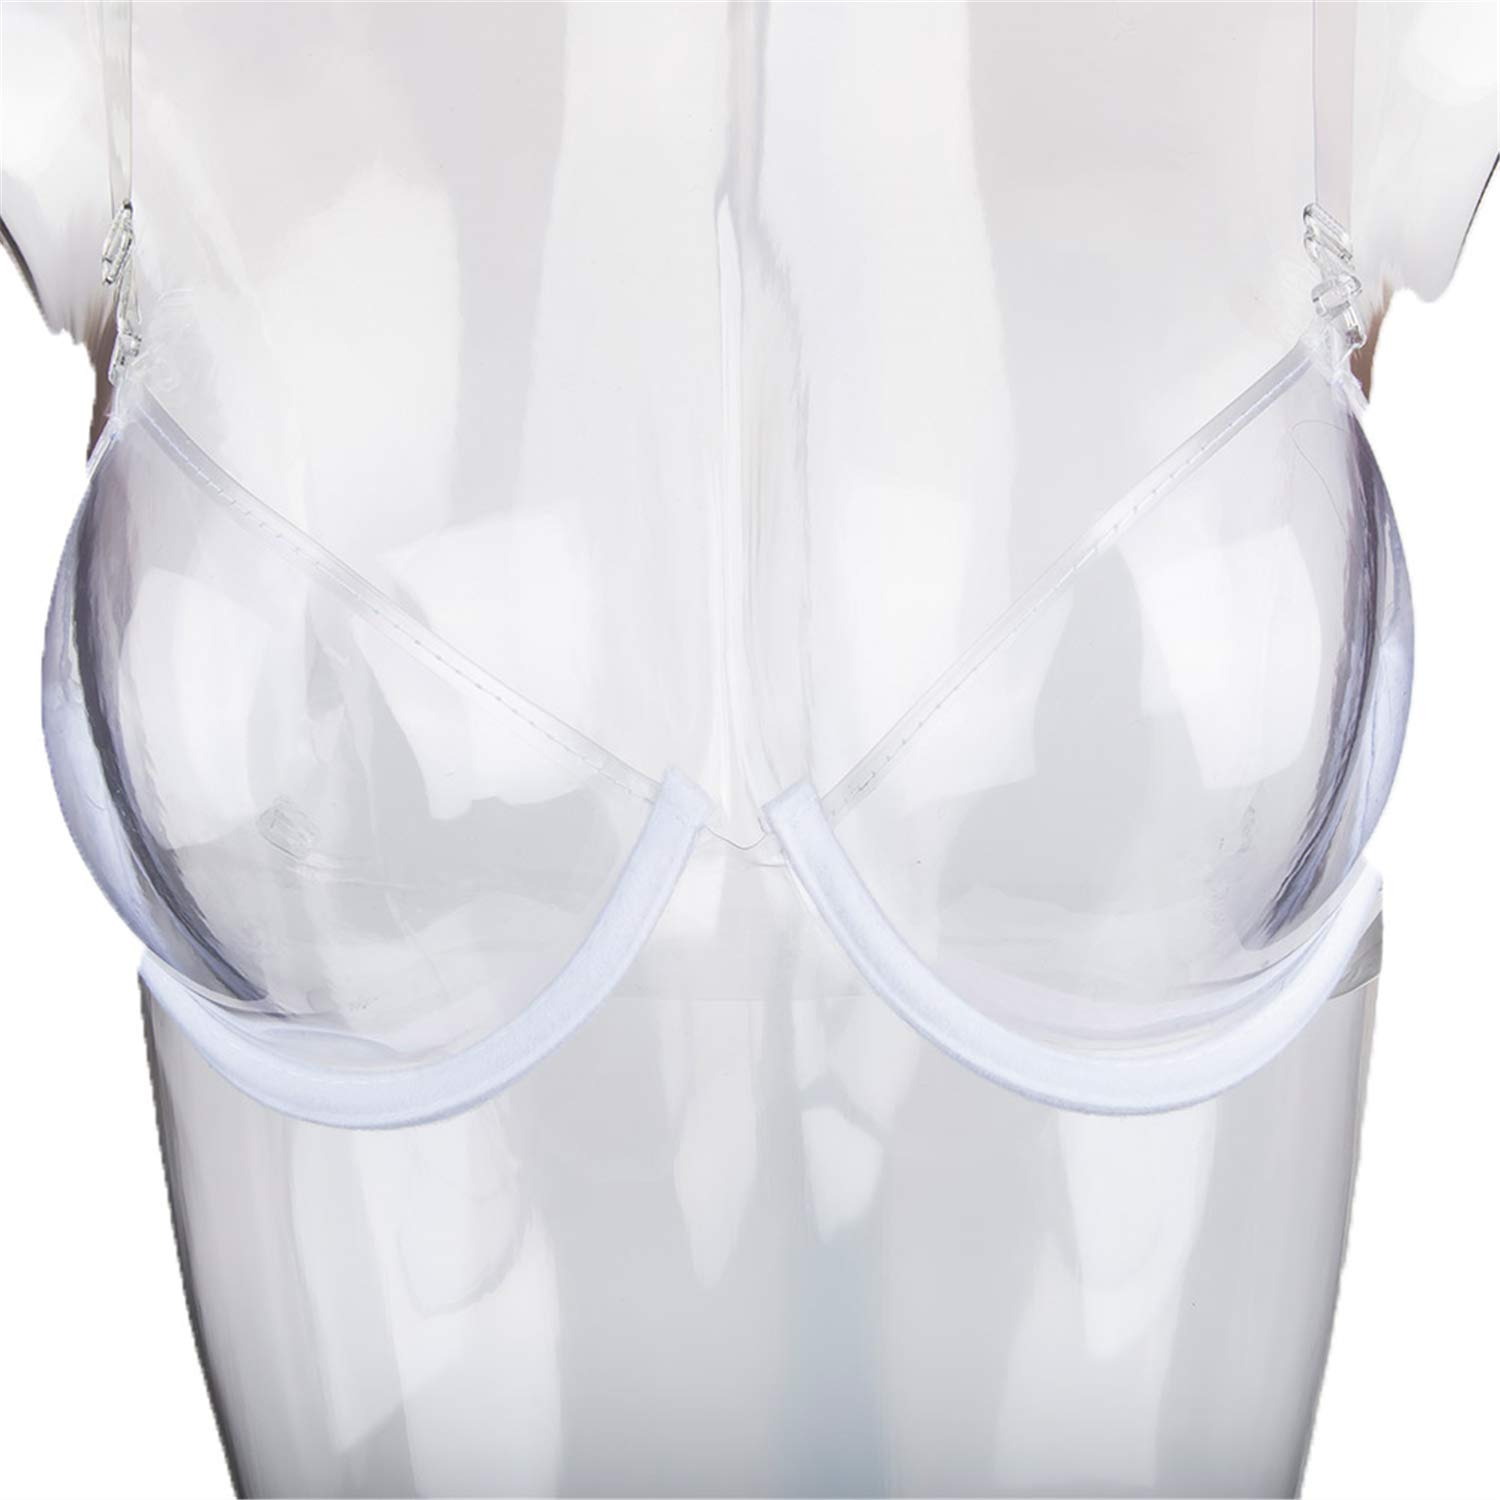 2018 Transparent Clear Push Up Bra Strap Invisible Bras Women Underwire 3//4 Cup